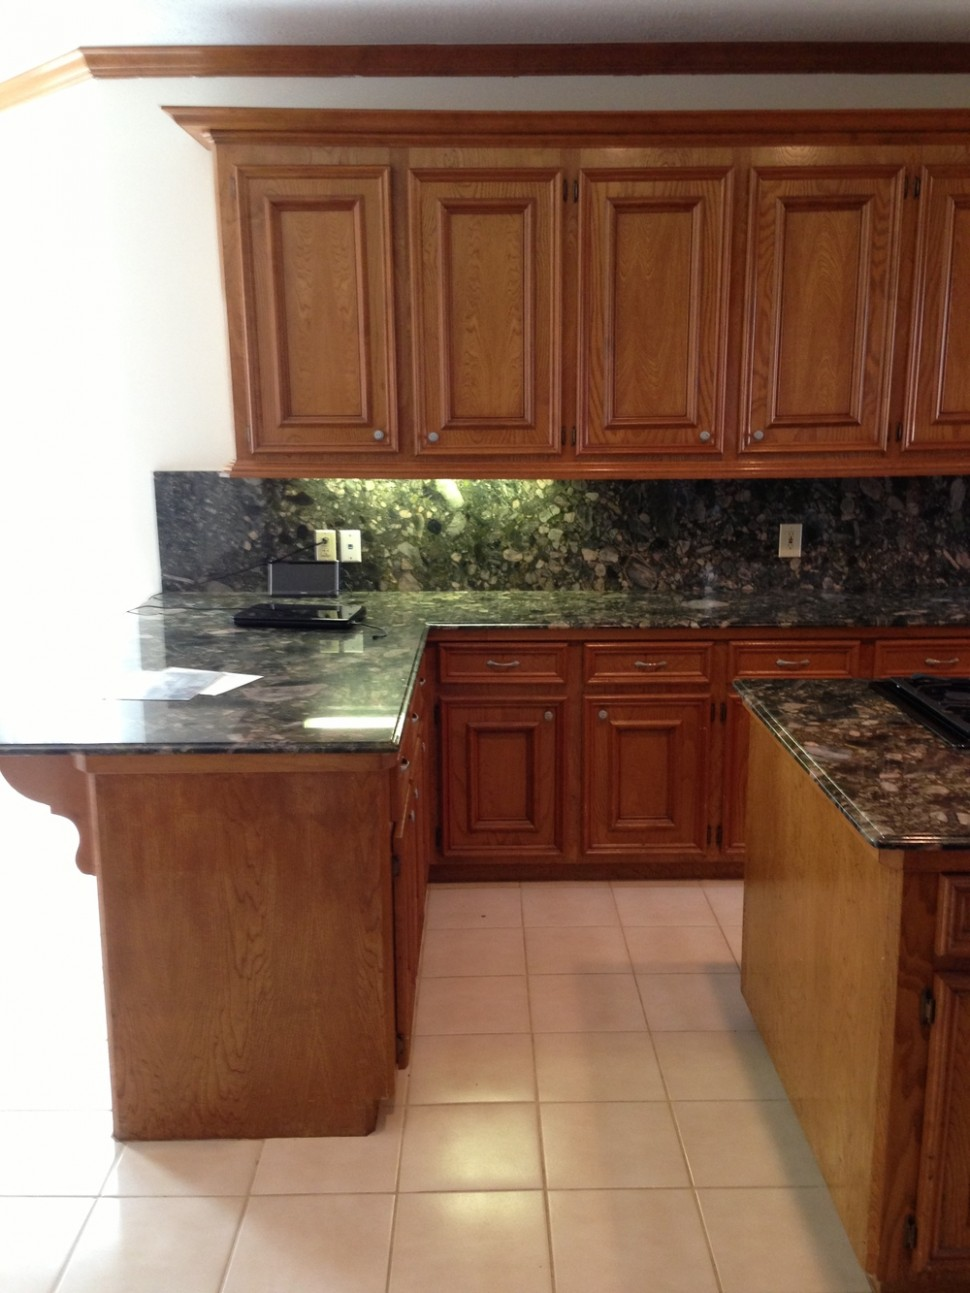 How To Make Ugly Cabinets Look Great! — DESIGNED - How To Make Wood Kitchen Cabinets Look Better